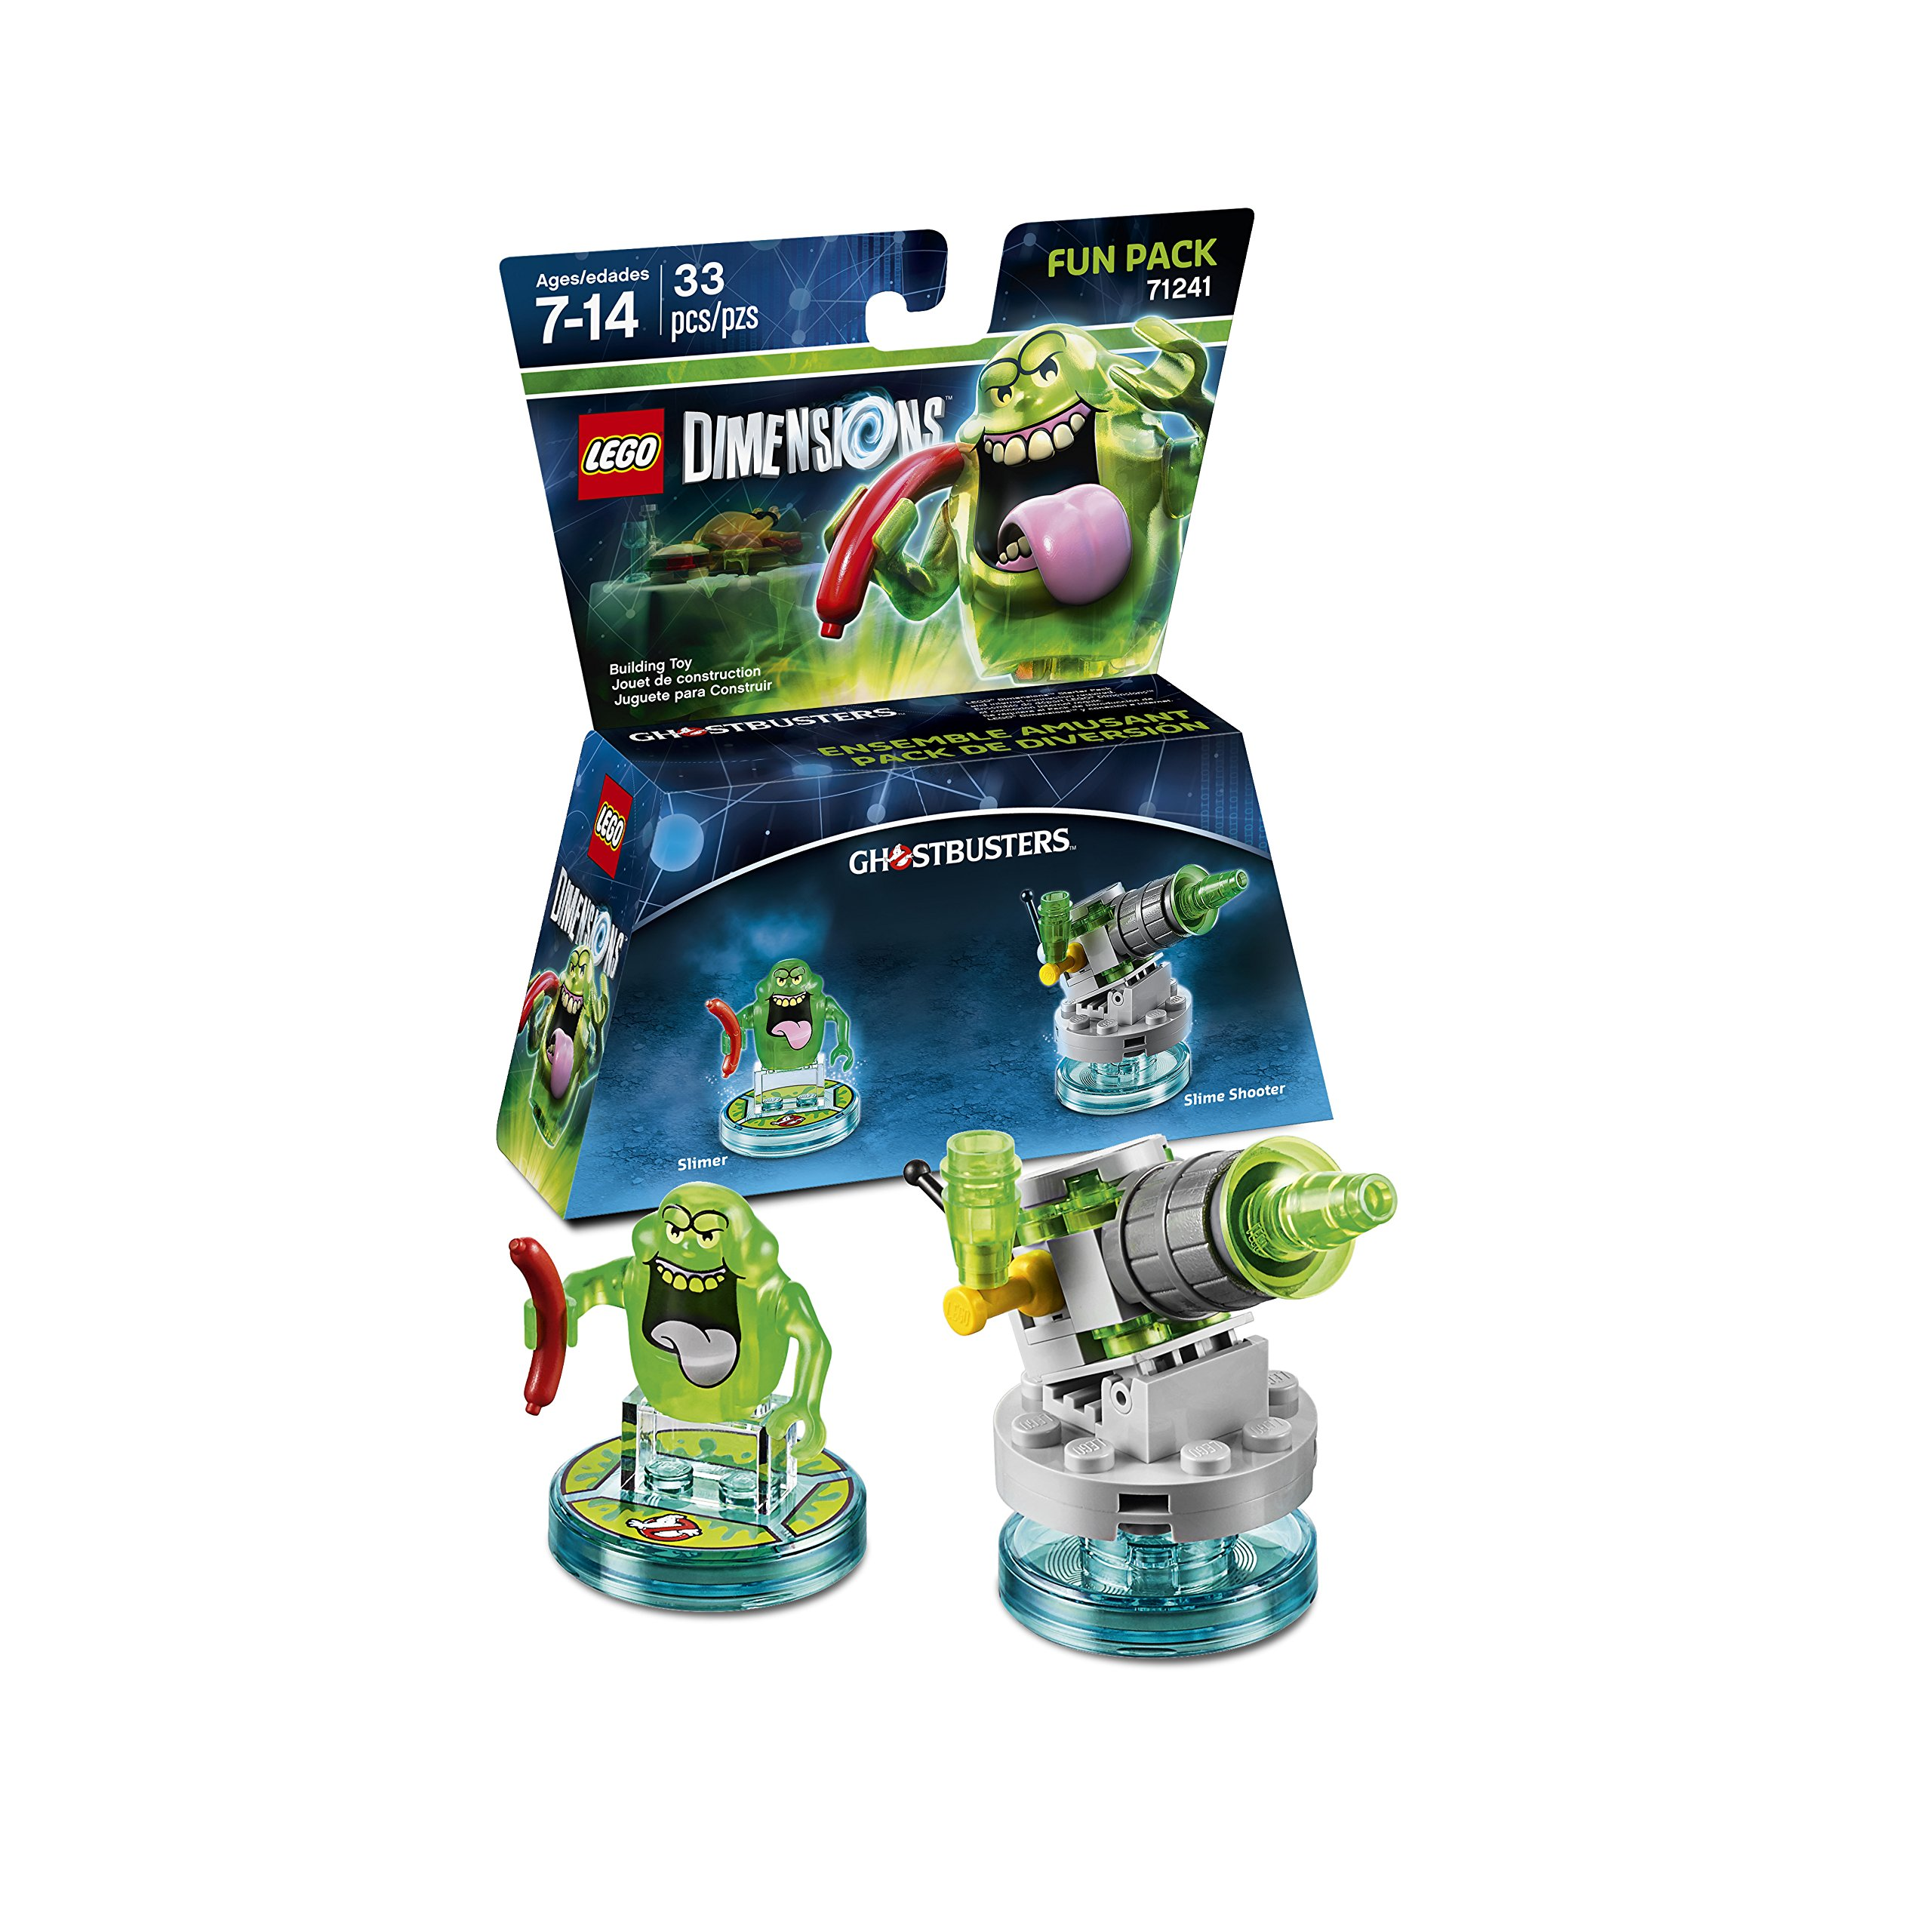 Ghostbusters Slimer Fun Pack - LEGO Dimensions by LEGO (Image #1)